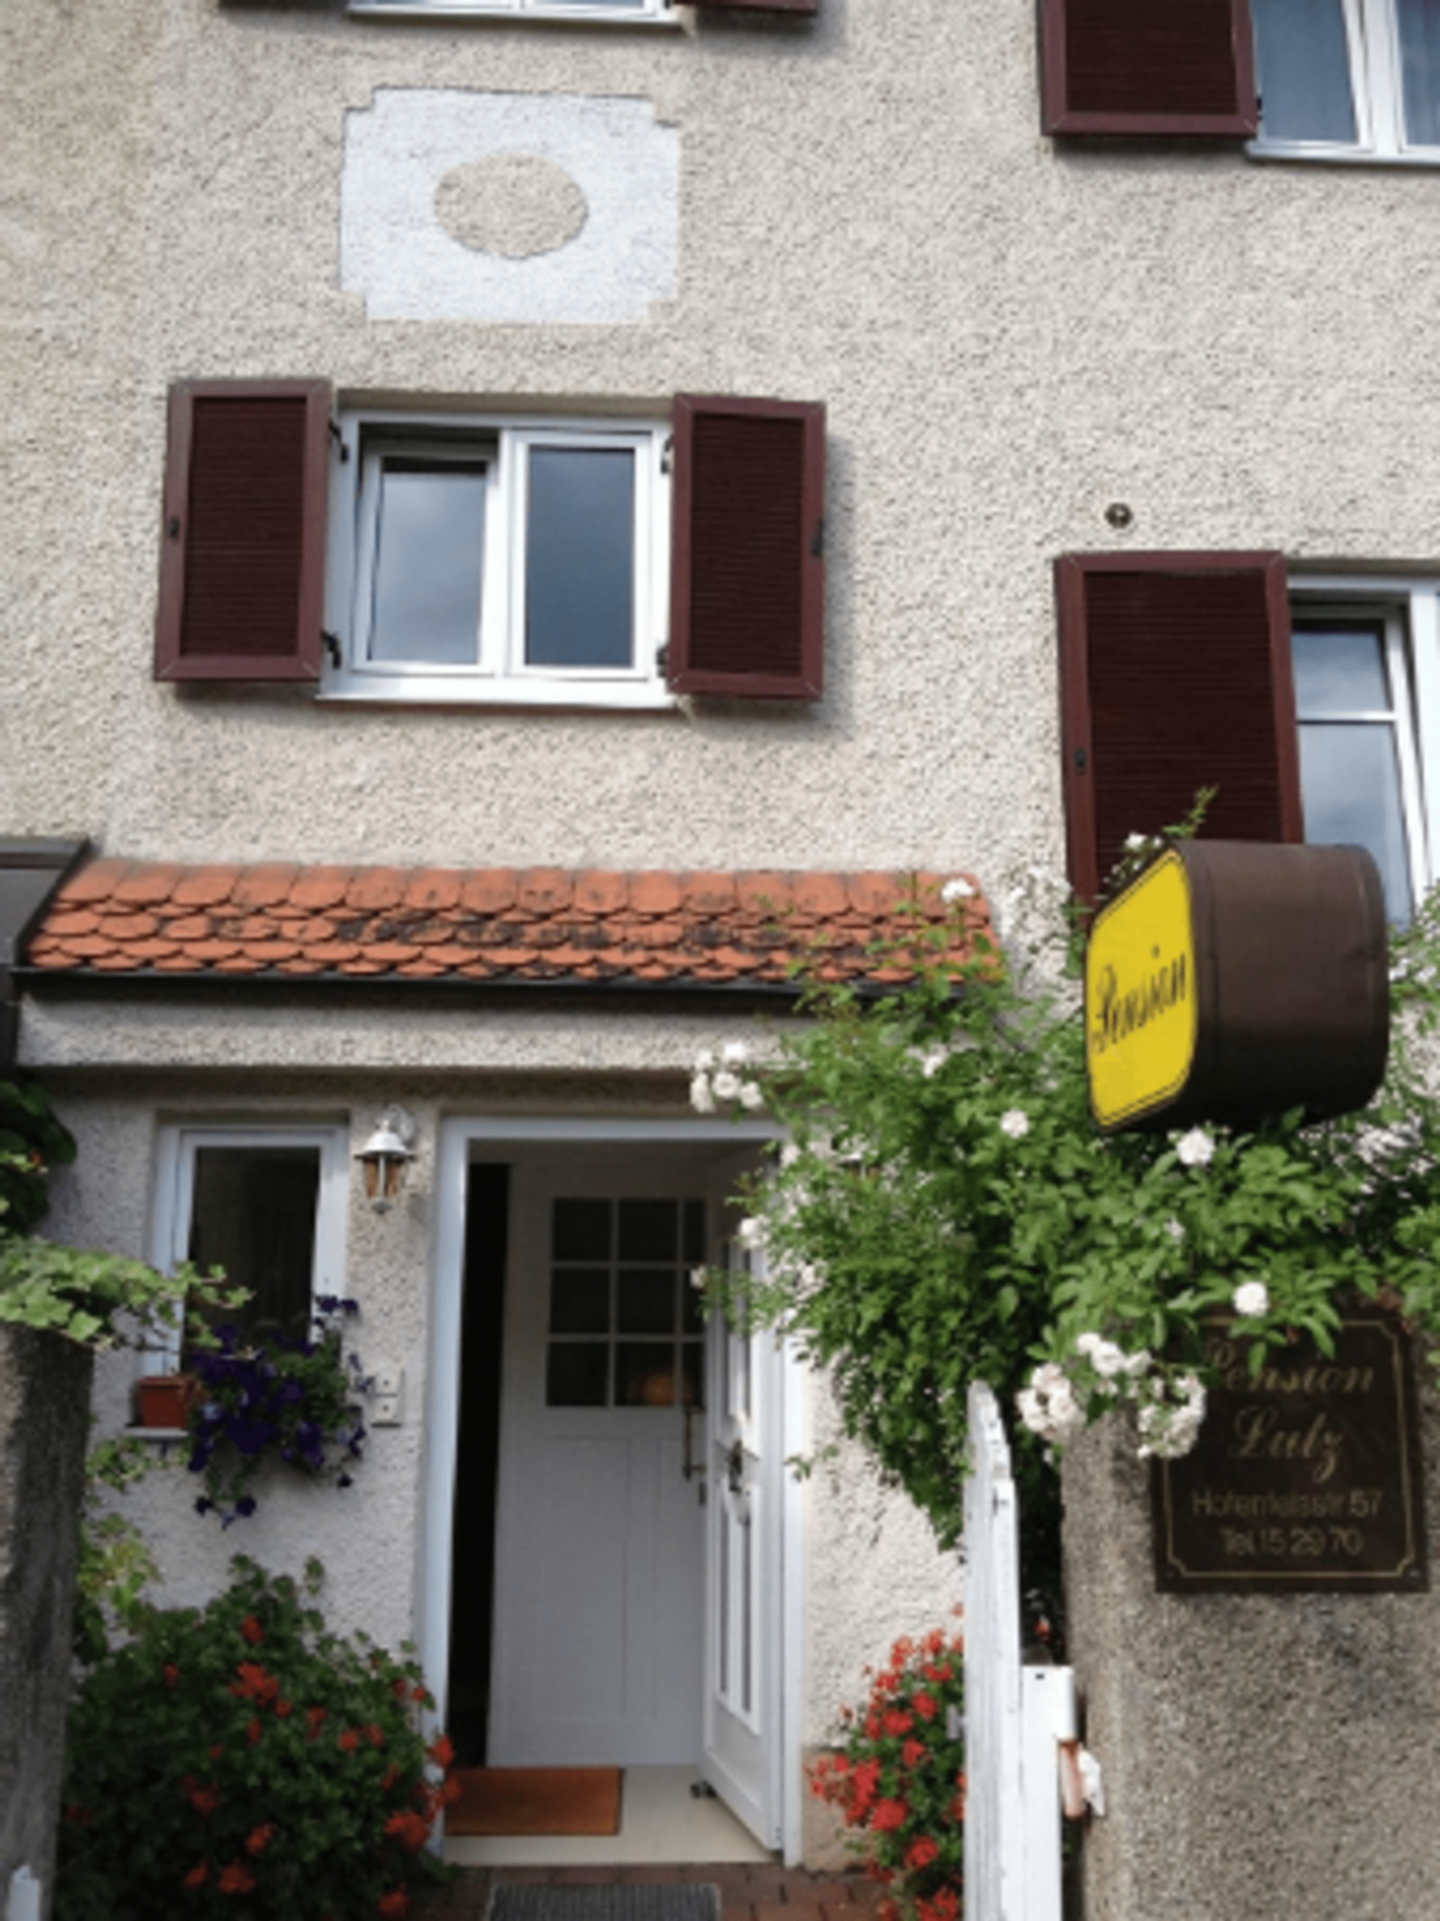 A house that has a sign on the side of a building at Pension Lutz.